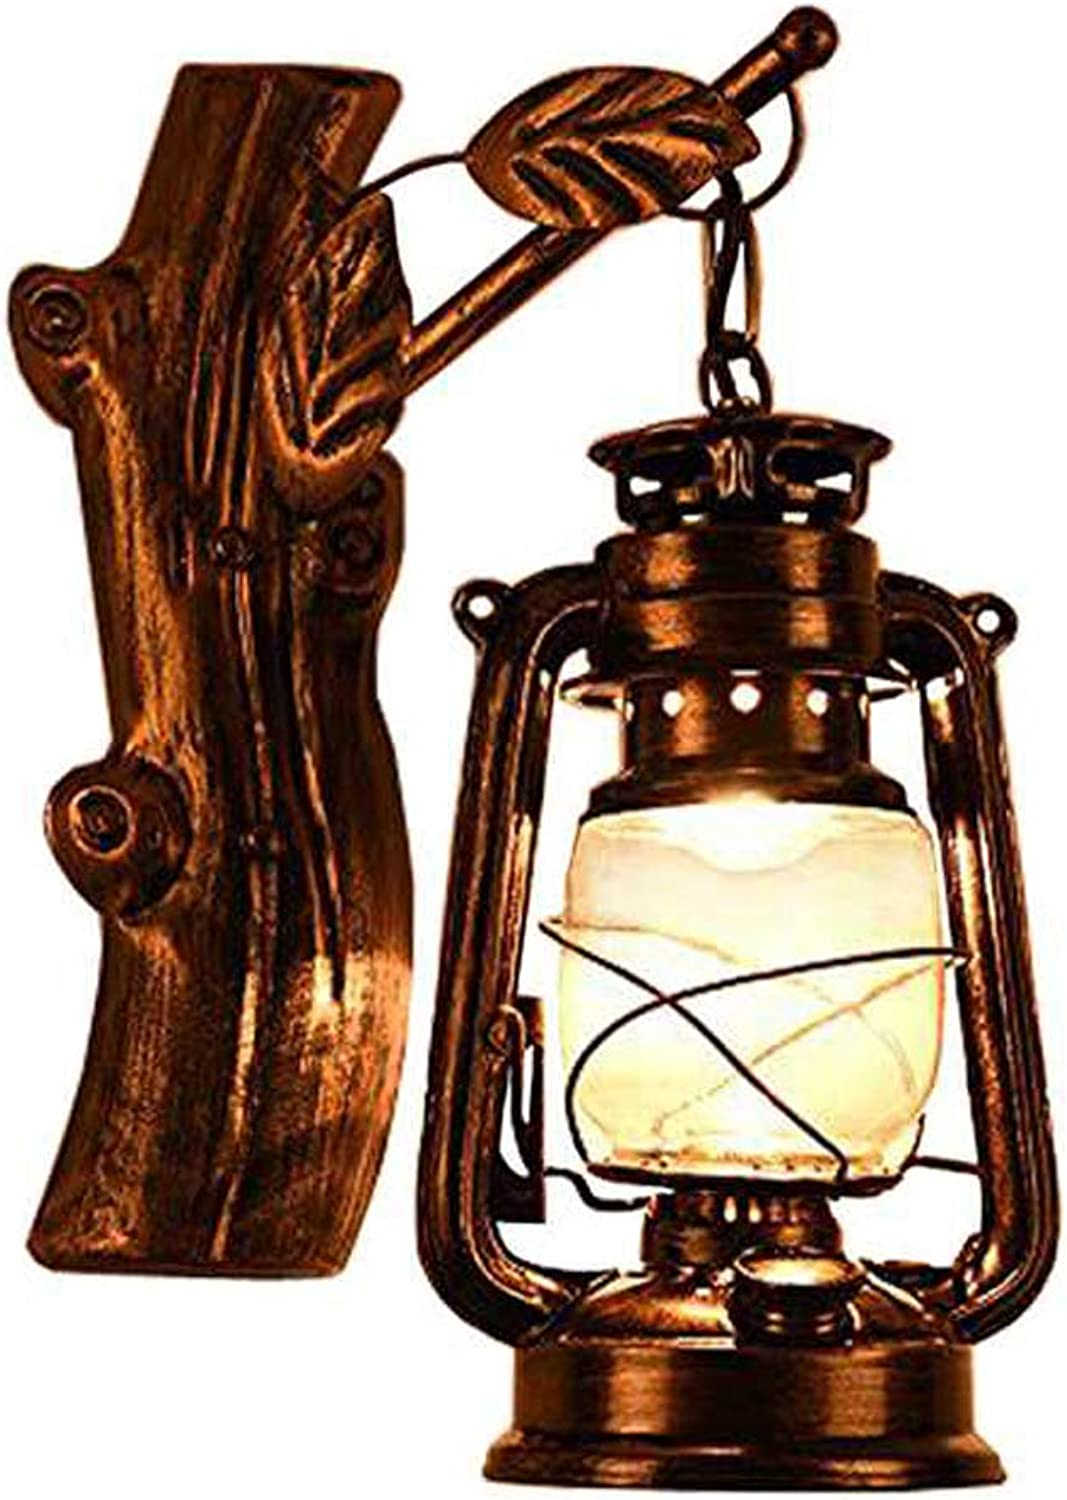 JINGUO Lighting Rustic Lantern Wall Mounted Light Industrial Vintage Creative Wood Wall Sconce Wall Lamp Lights Sconces Fixture Nautical Style with Glass Clear Shade in Age Bronze for Indoor Restauran